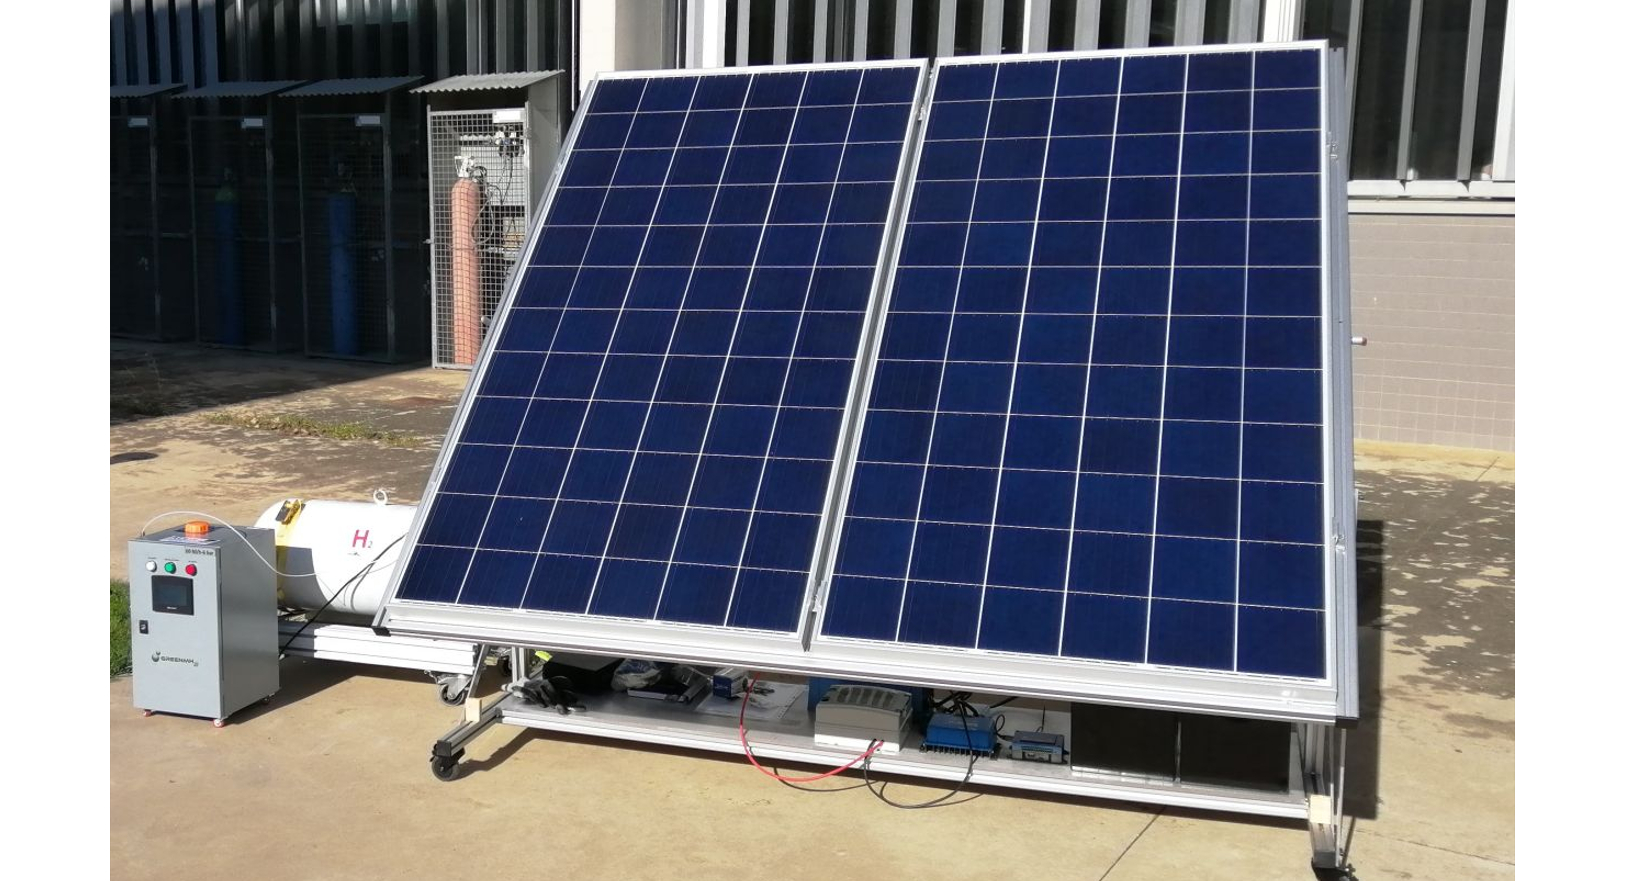 Photovoltaic panels, electrolyser and hydrogen tank